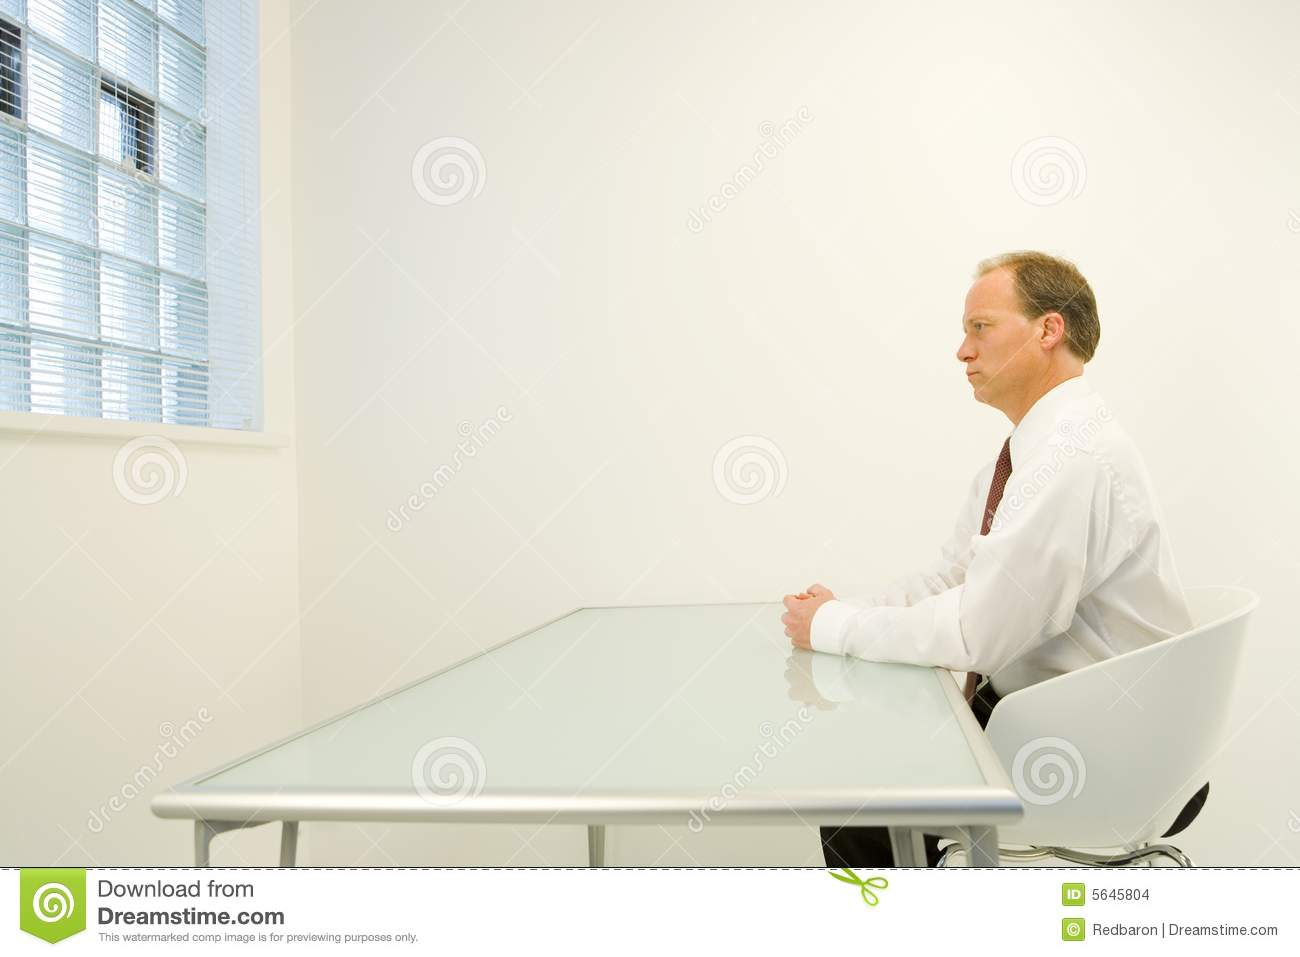 Man alone in white room stock photo Image of businessman